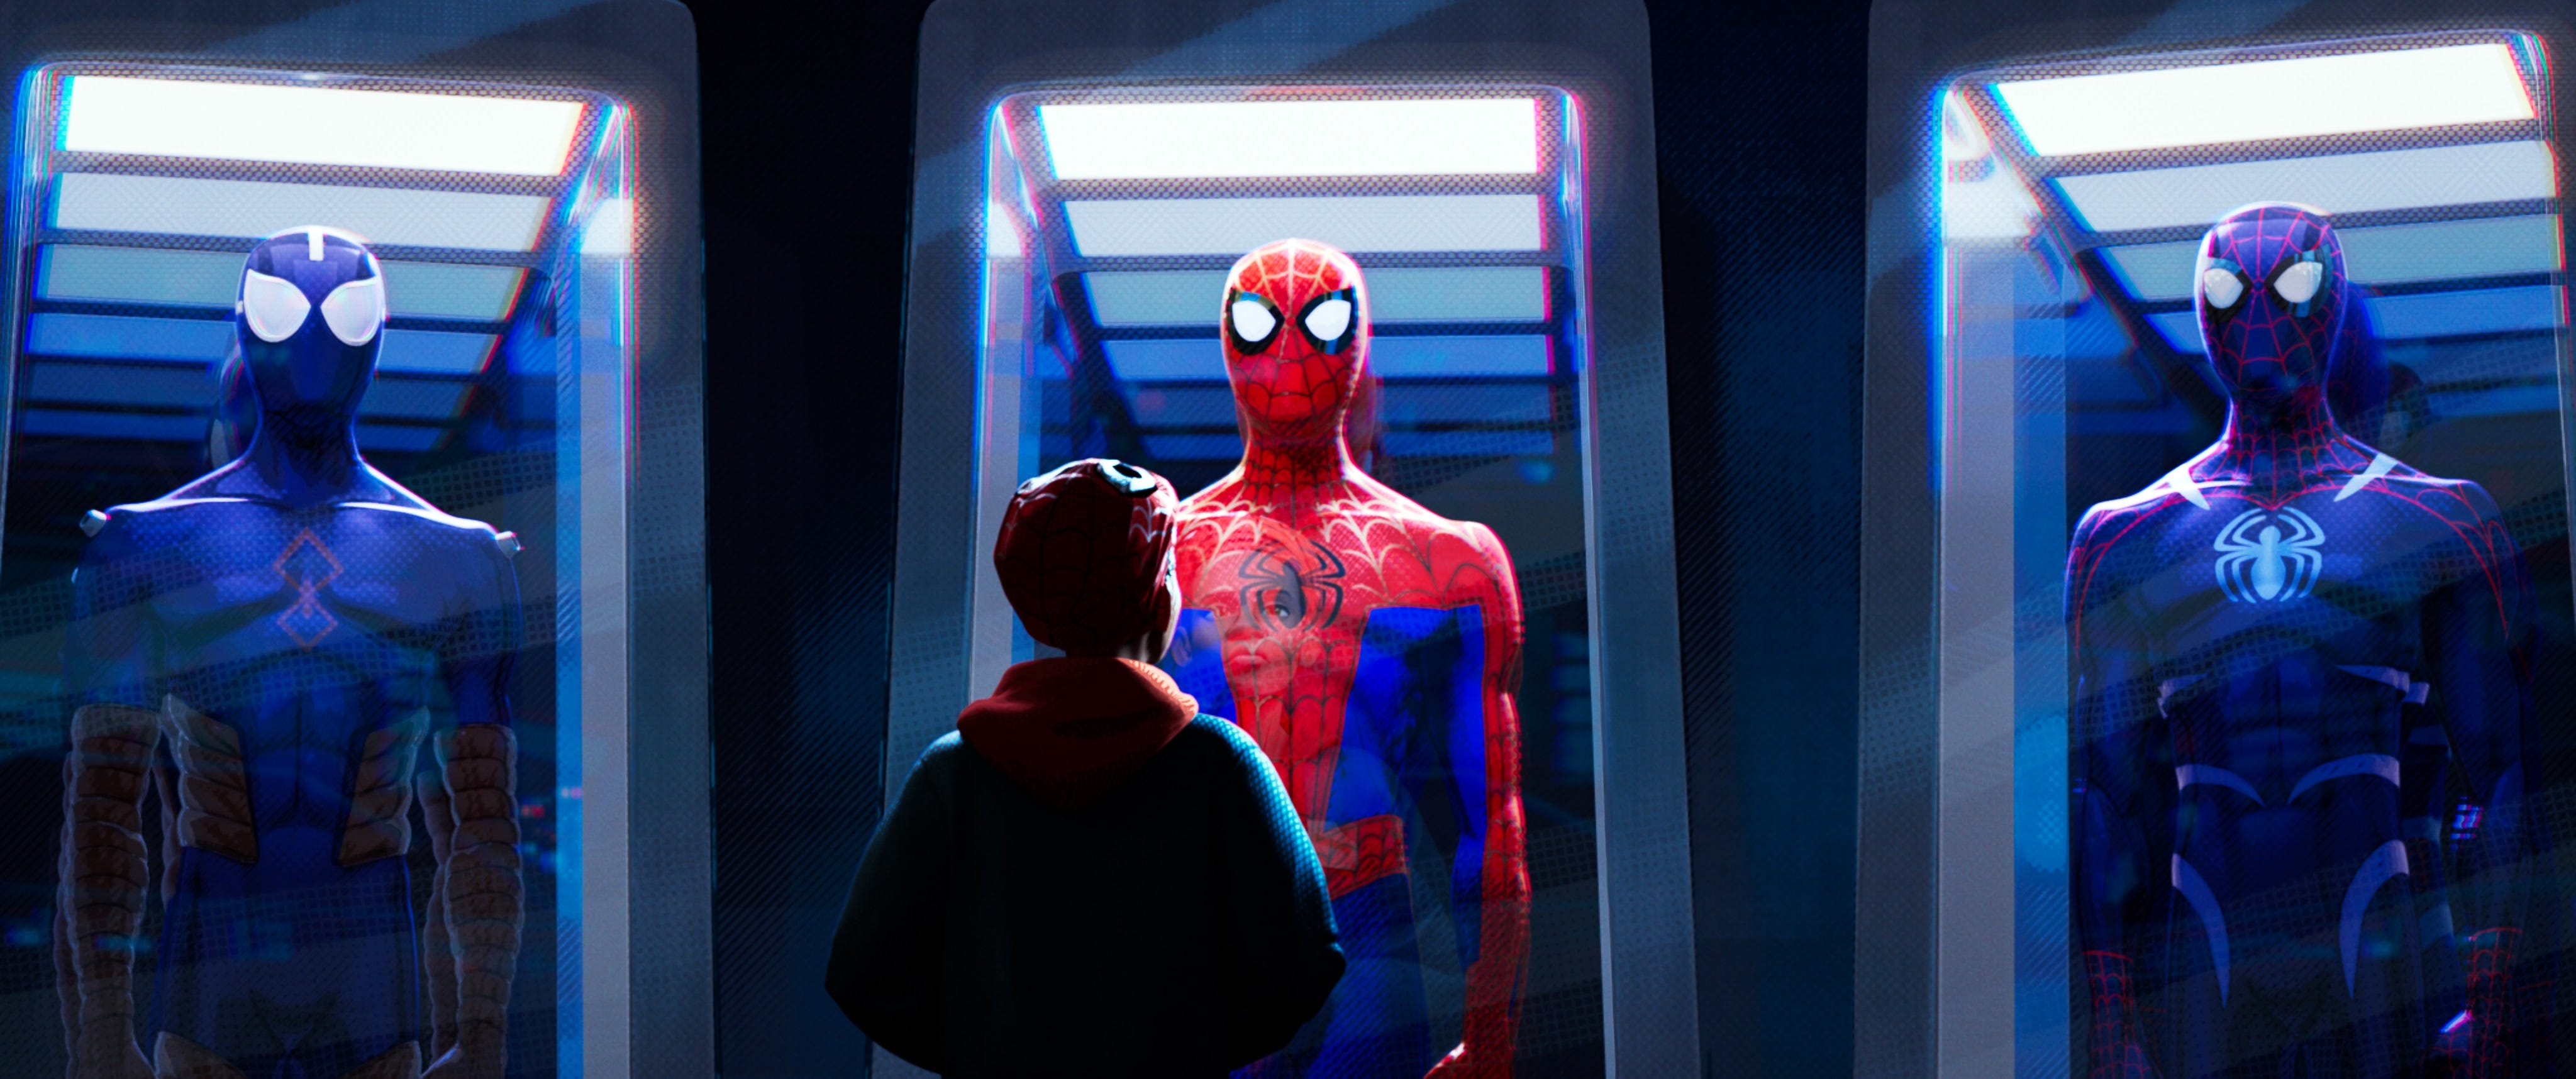 "Miles Morales (voiced by Shameik Moore) discovers there's more than one universe, and more than one Spider-Man, in ""Spider-Man: Into the Spider-Verse."""